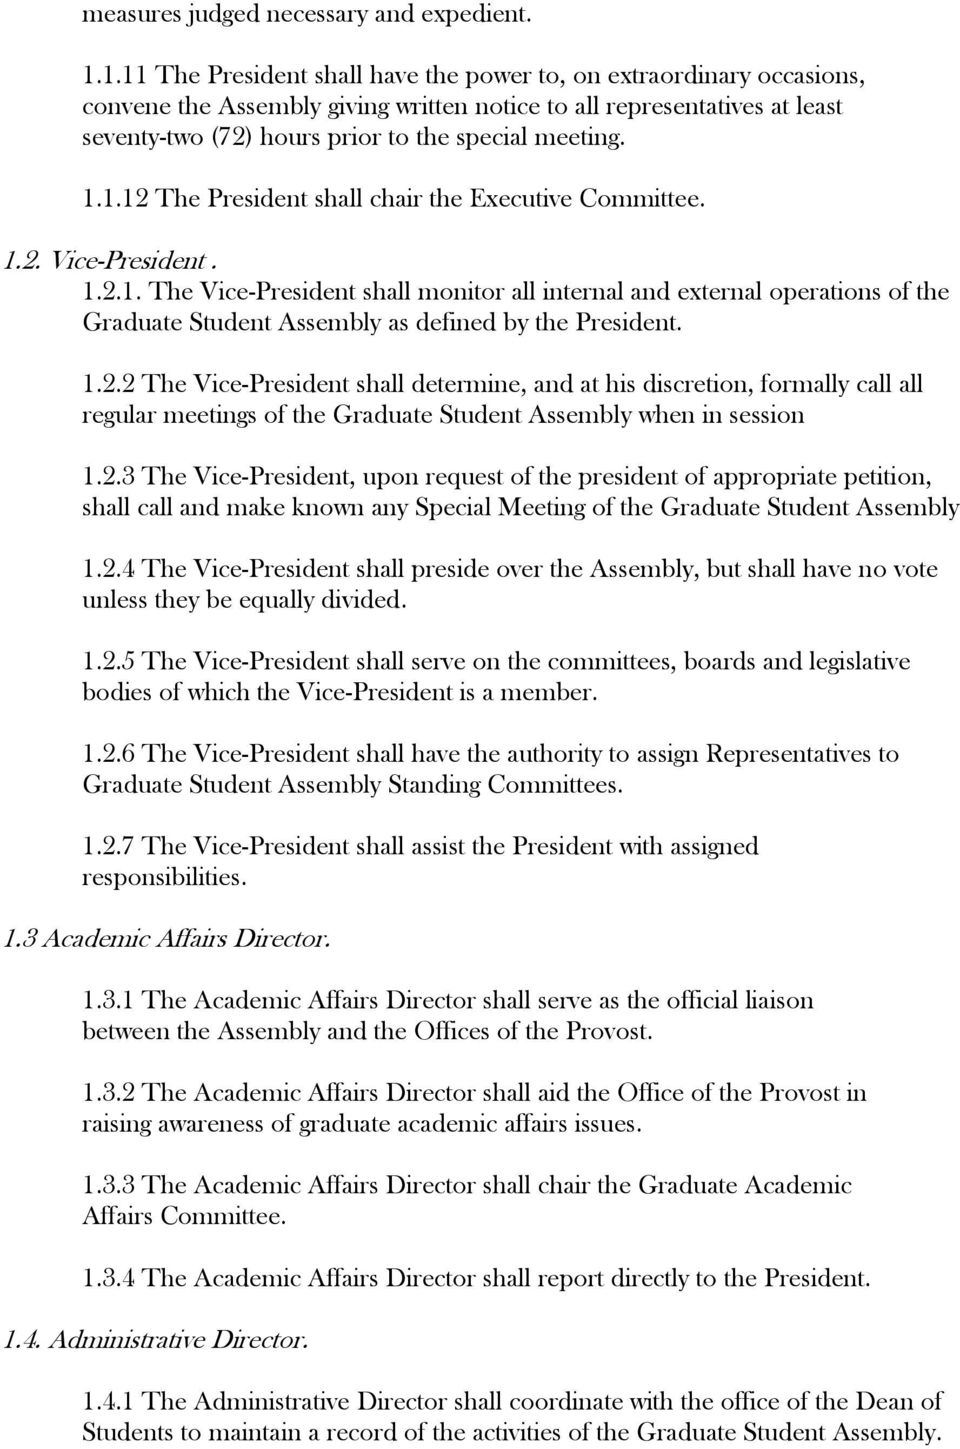 1.1.12 The President shall chair the Executive Committee. 1.2. Vice-President. 1.2.1. The Vice-President shall monitor all internal and external operations of the Graduate Student Assembly as defined by the President.